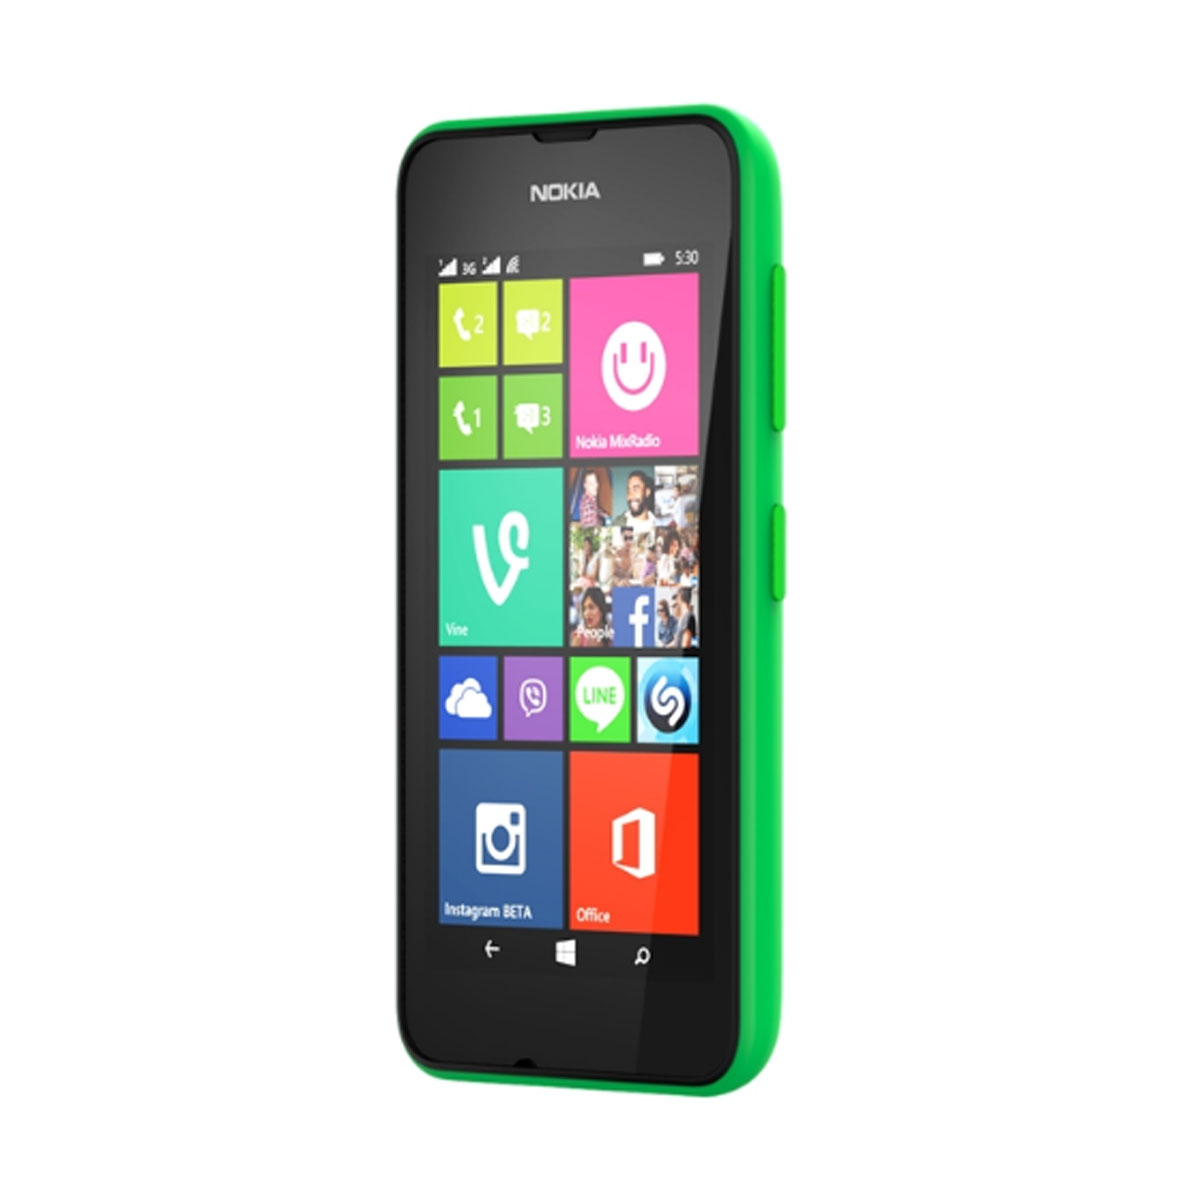 nokia lumia 530 dual sim vert mobile smartphone nokia. Black Bedroom Furniture Sets. Home Design Ideas